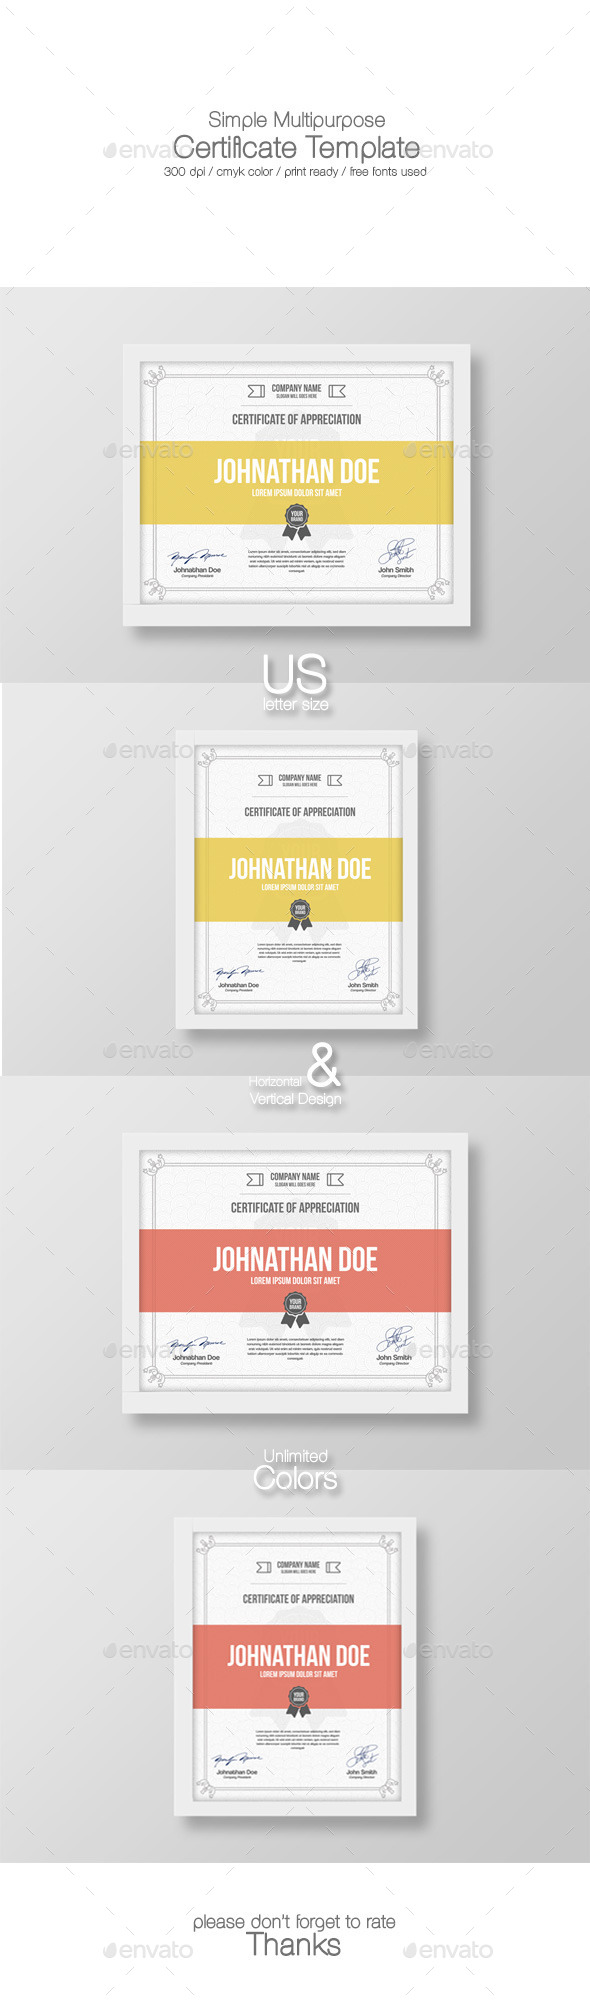 GraphicRiver Simple Multipurpose Certificate Template 9508918